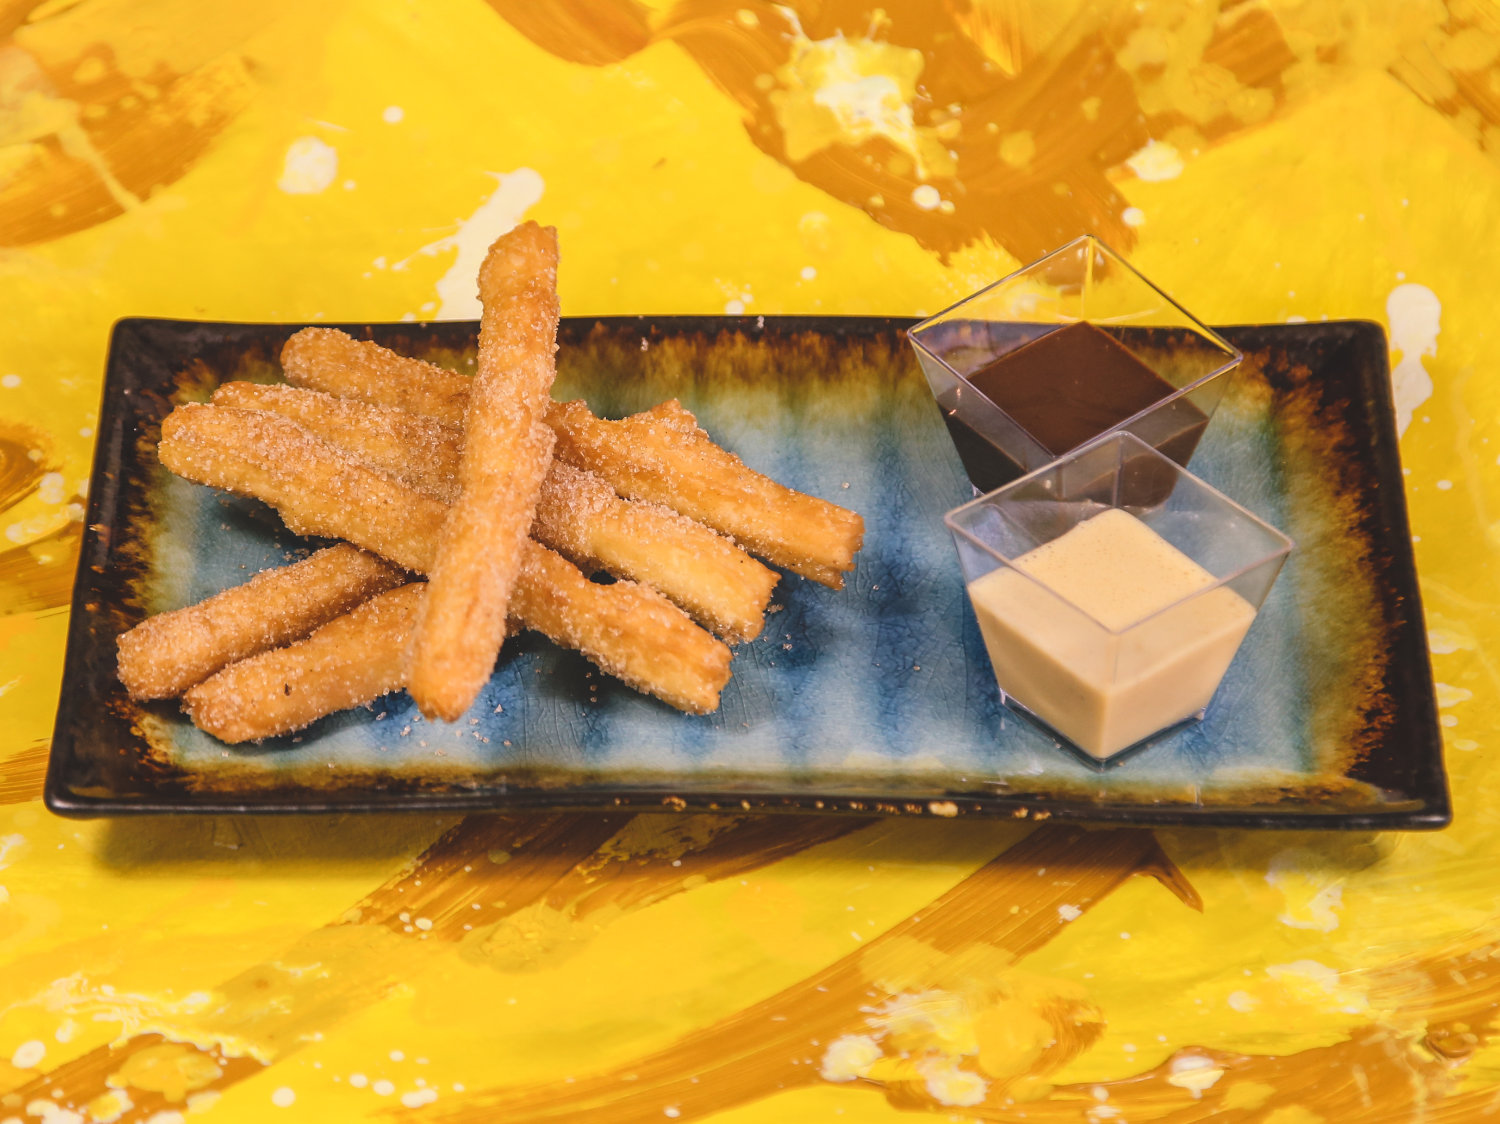 Spanish dessert made of fried dough sprinkled with sugar and cinnamon with caramel and chocolate sauce